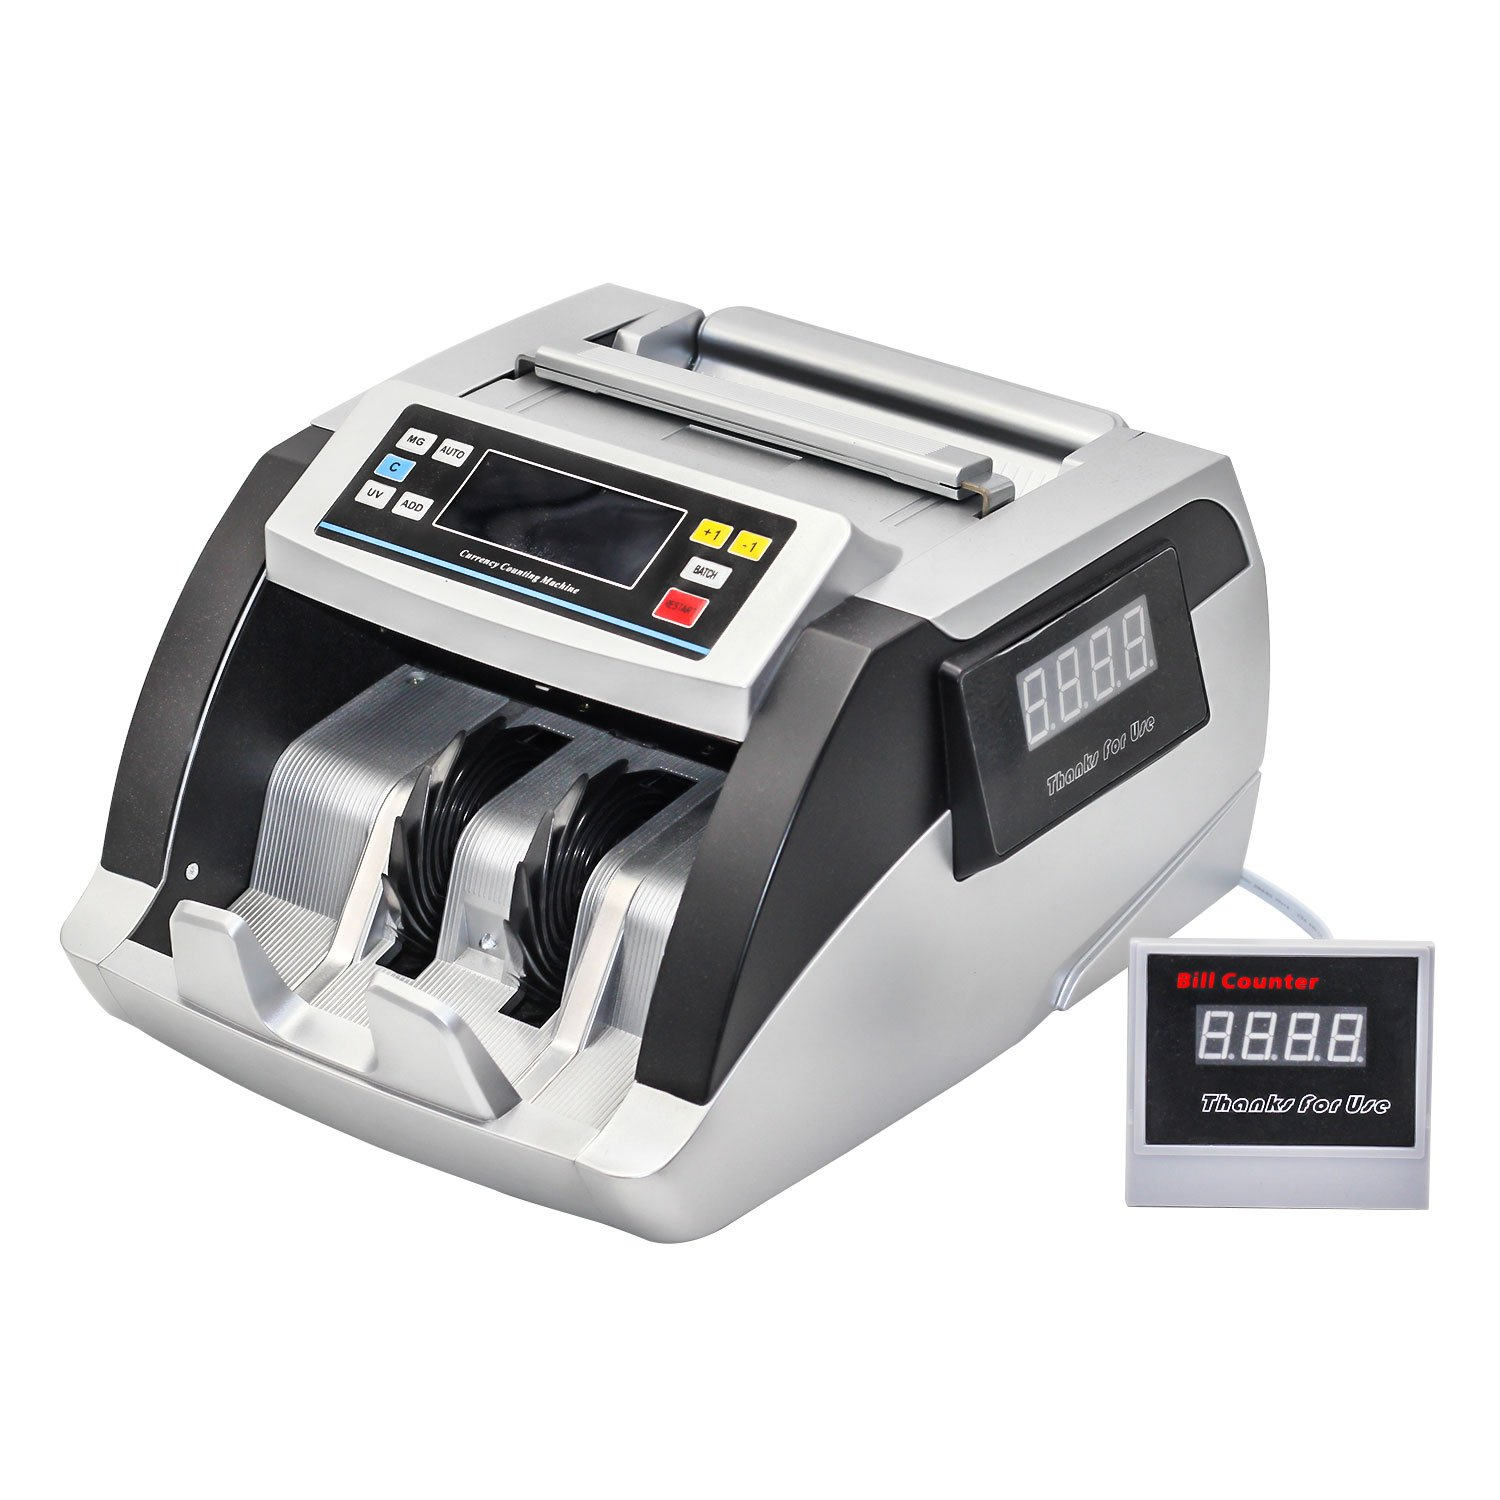 Bill Money Counter Worldwide Currency Cash Counting Machine UV & MG Counterfeit (Elite)